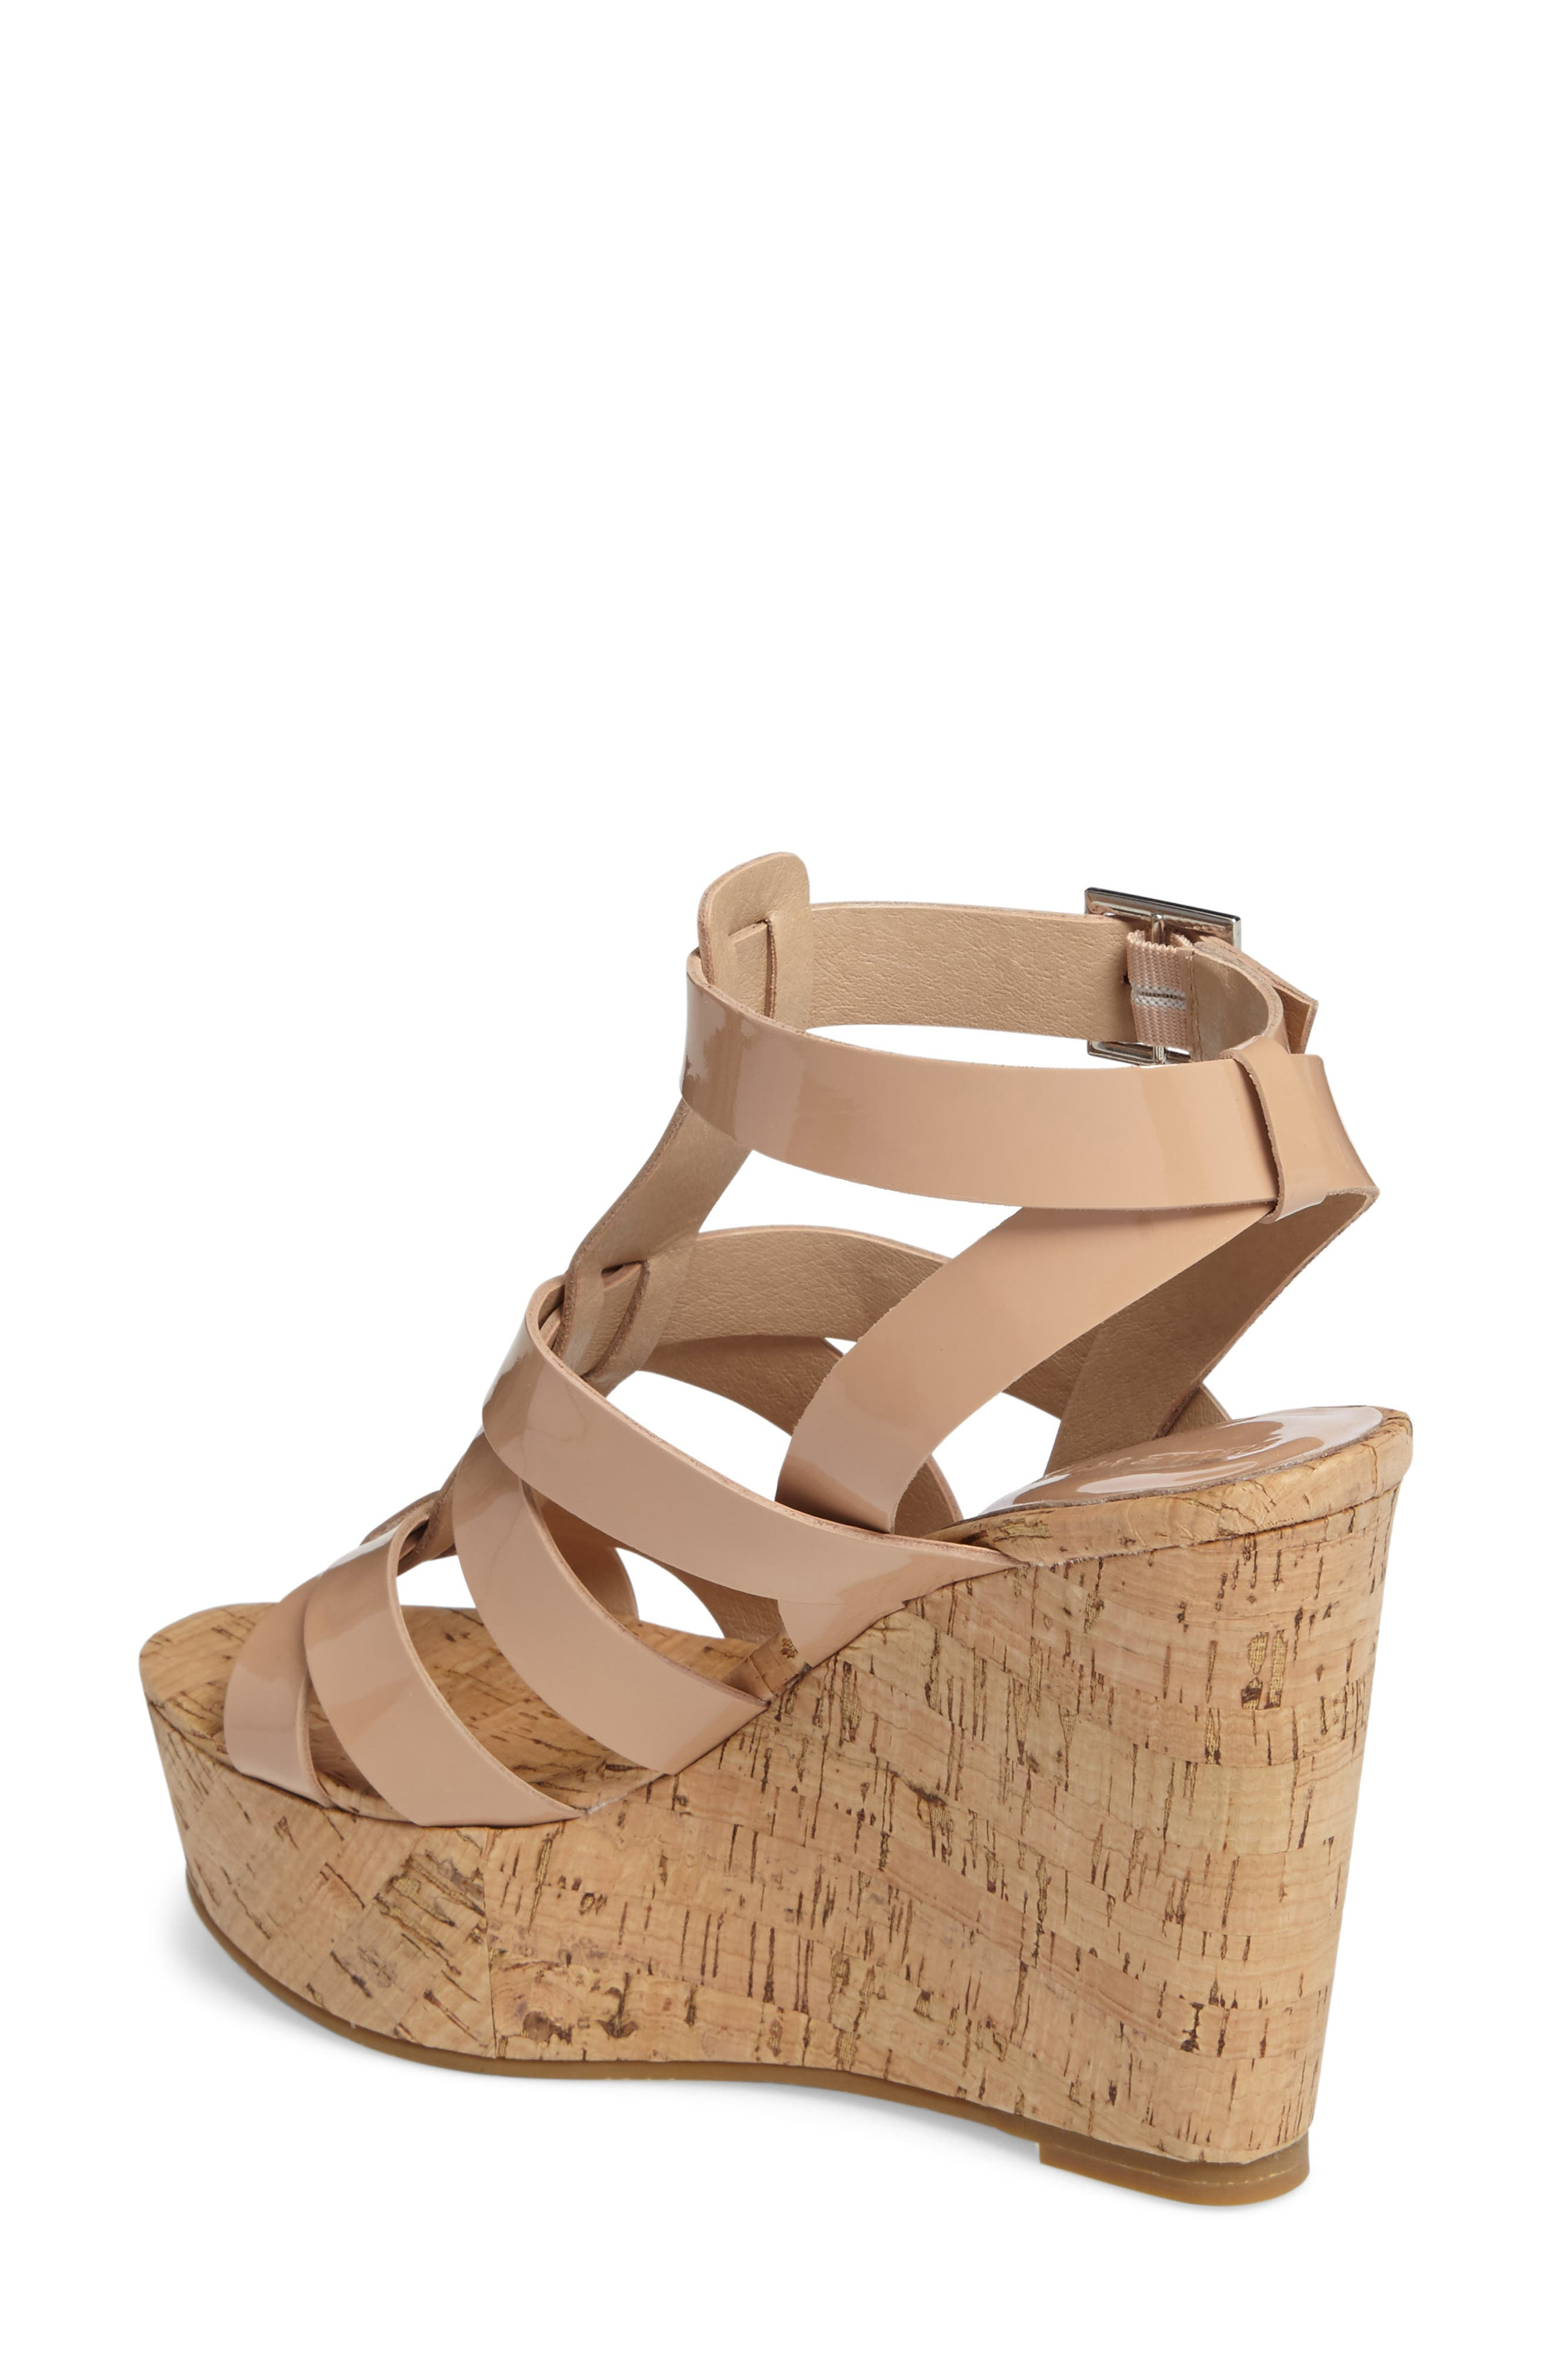 Rayjay Wedge Sandal,                             Alternate thumbnail 2, color,                             Blush Leather